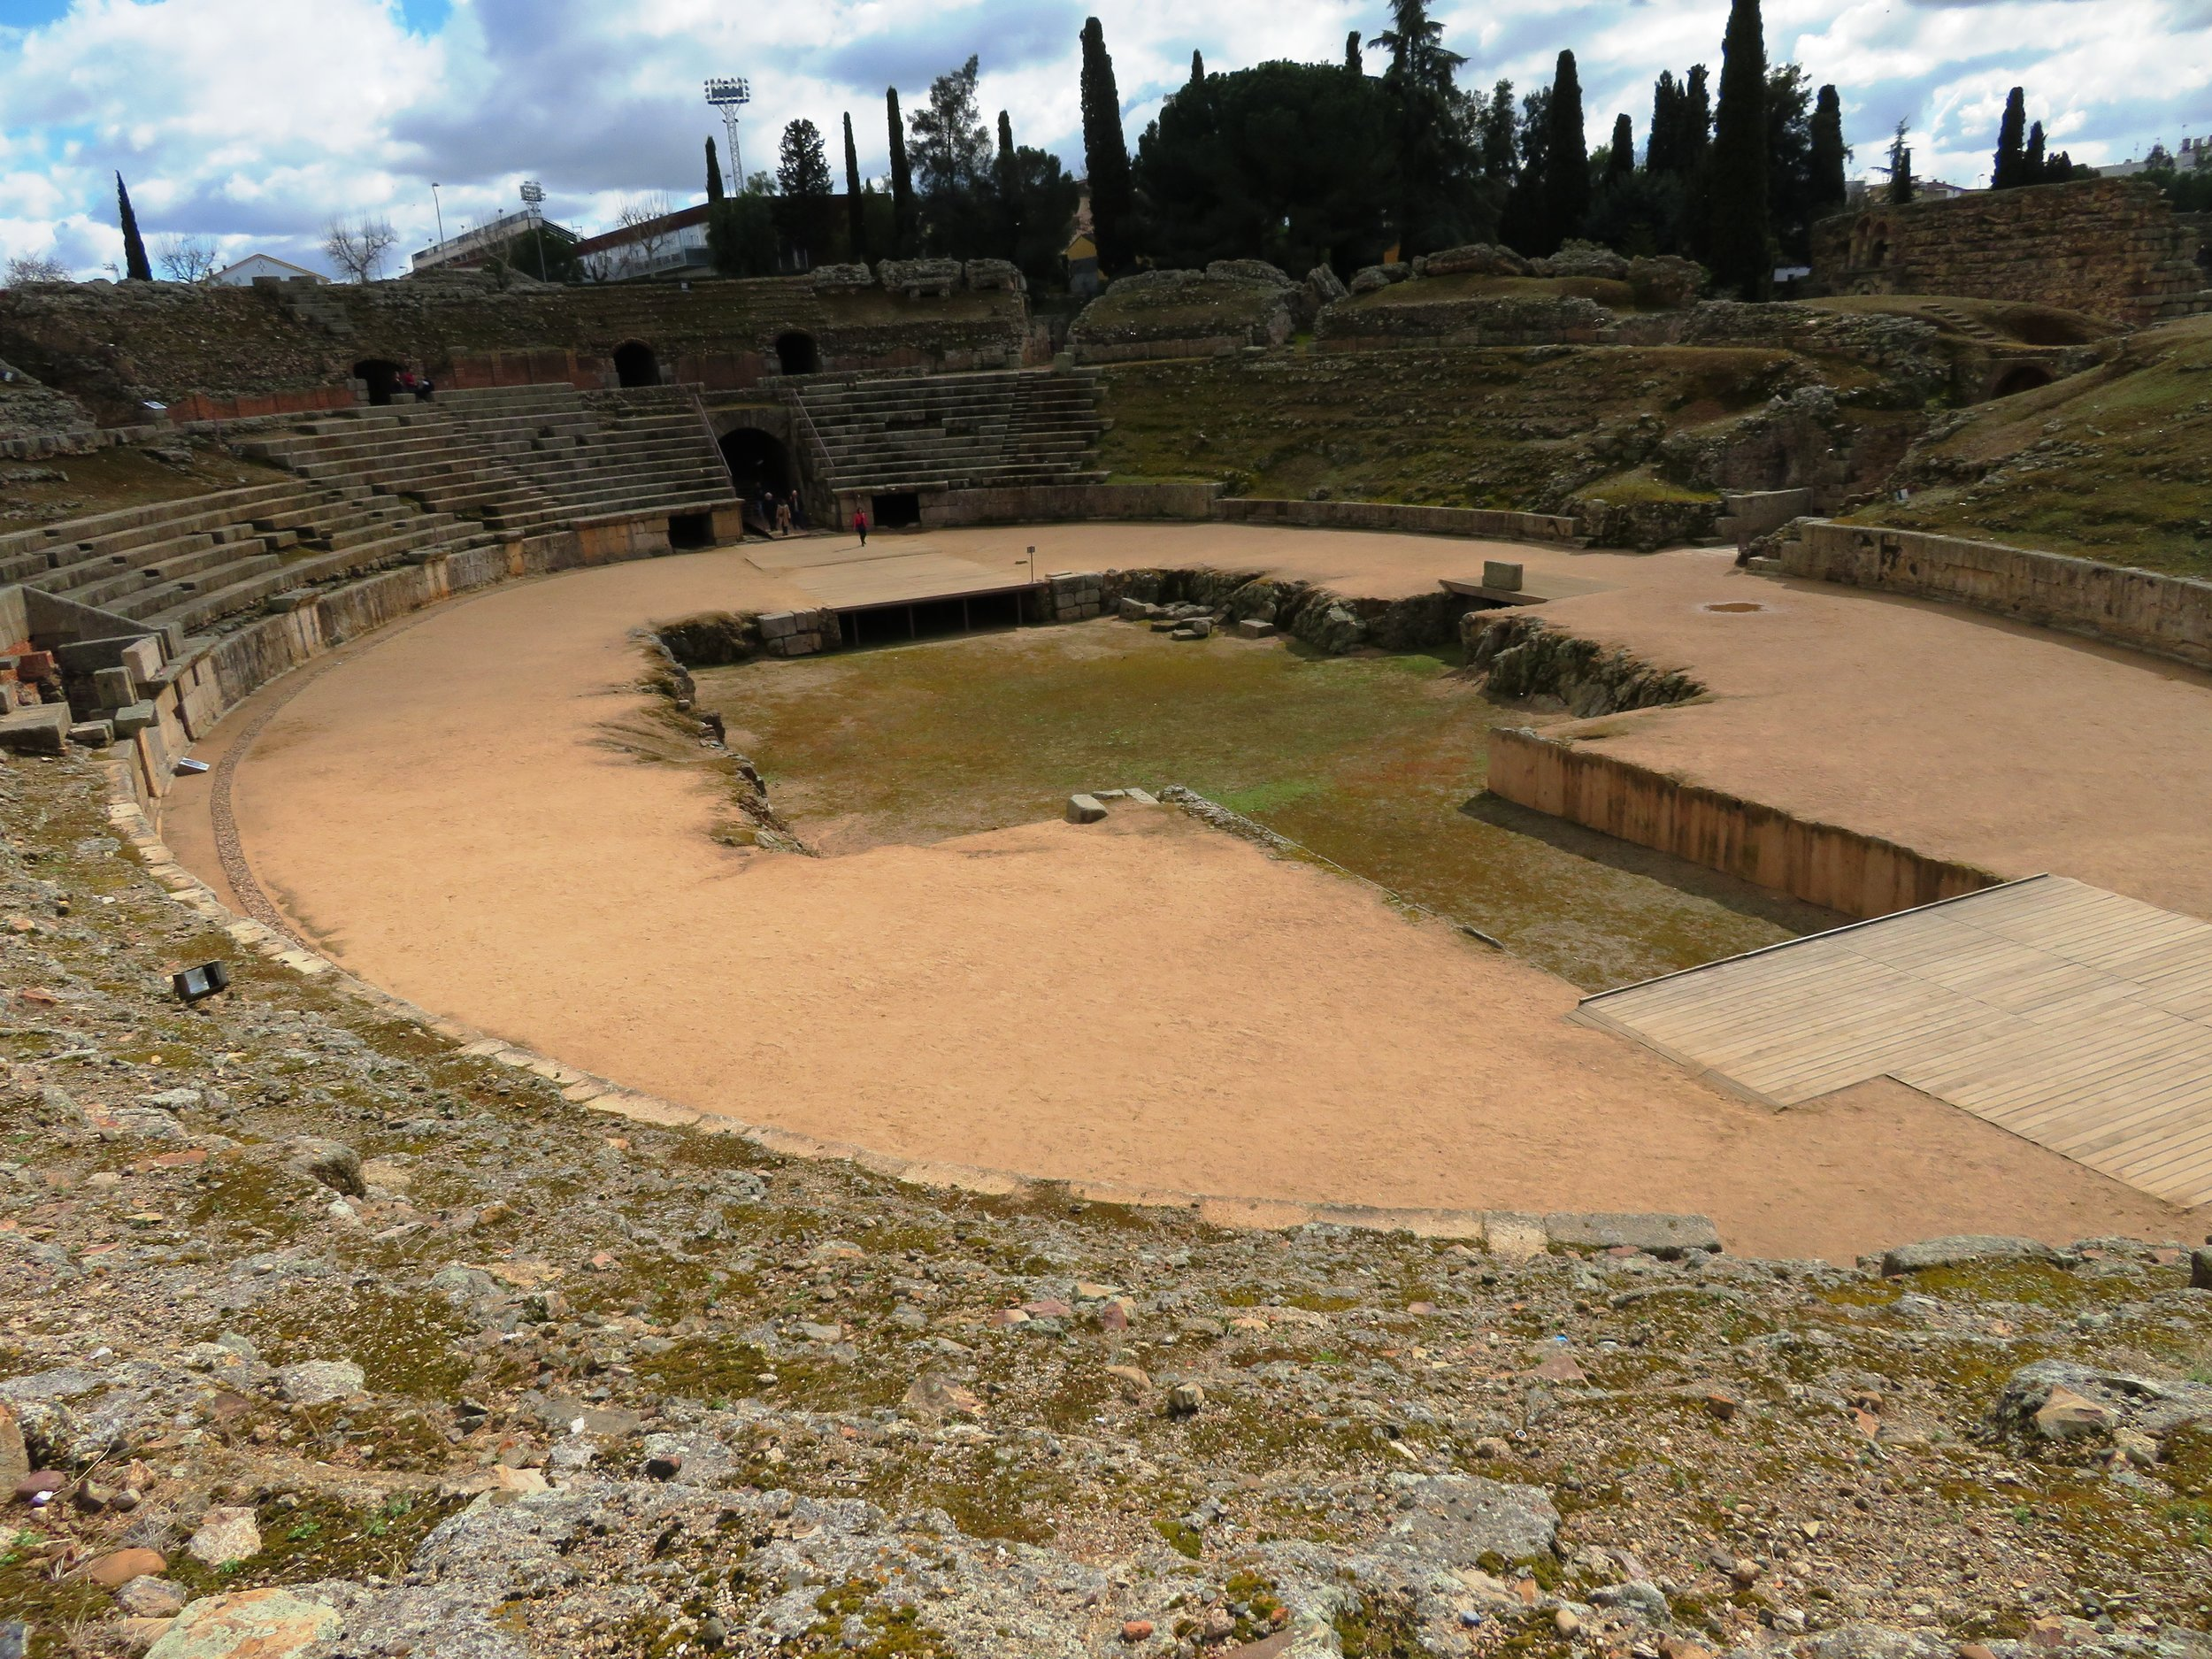 Amfitheater in Merida